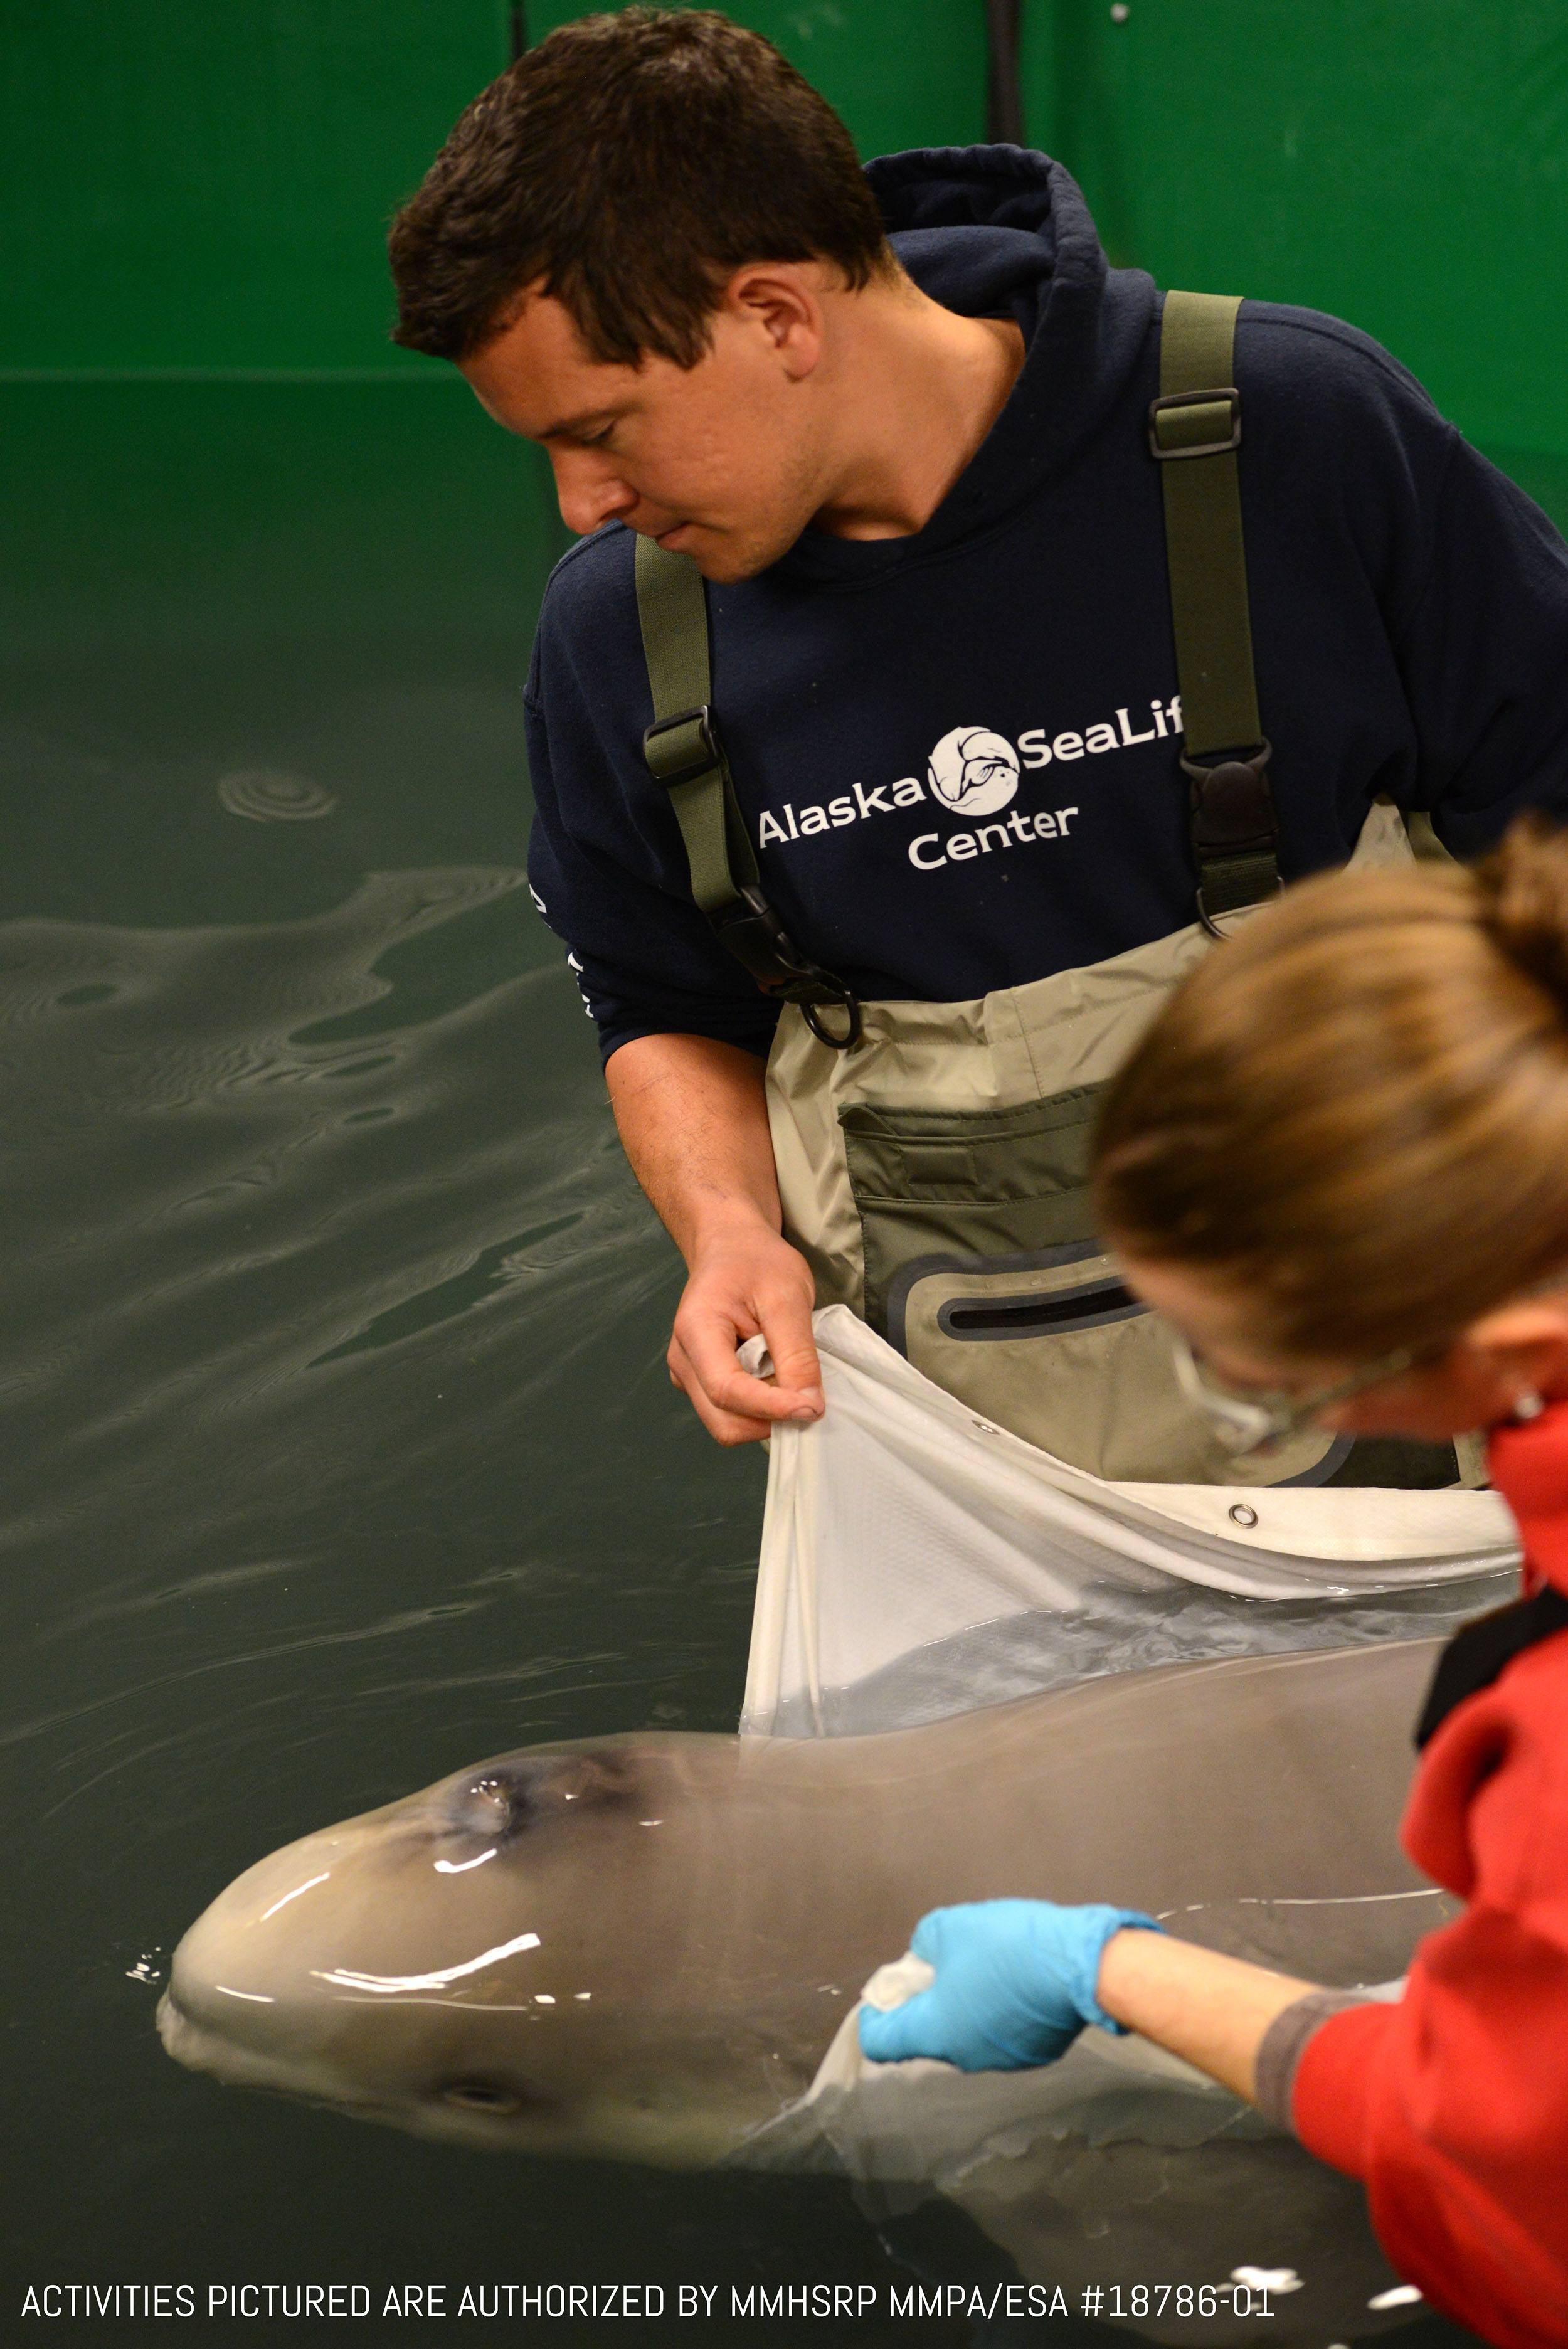 The beluga calf is under 24hr critical care at the Alaska SeaLife Center. (Activities pictured are authorized by MMHSRP MMPA/ESA #18786-01/Vancouver Aquarium)